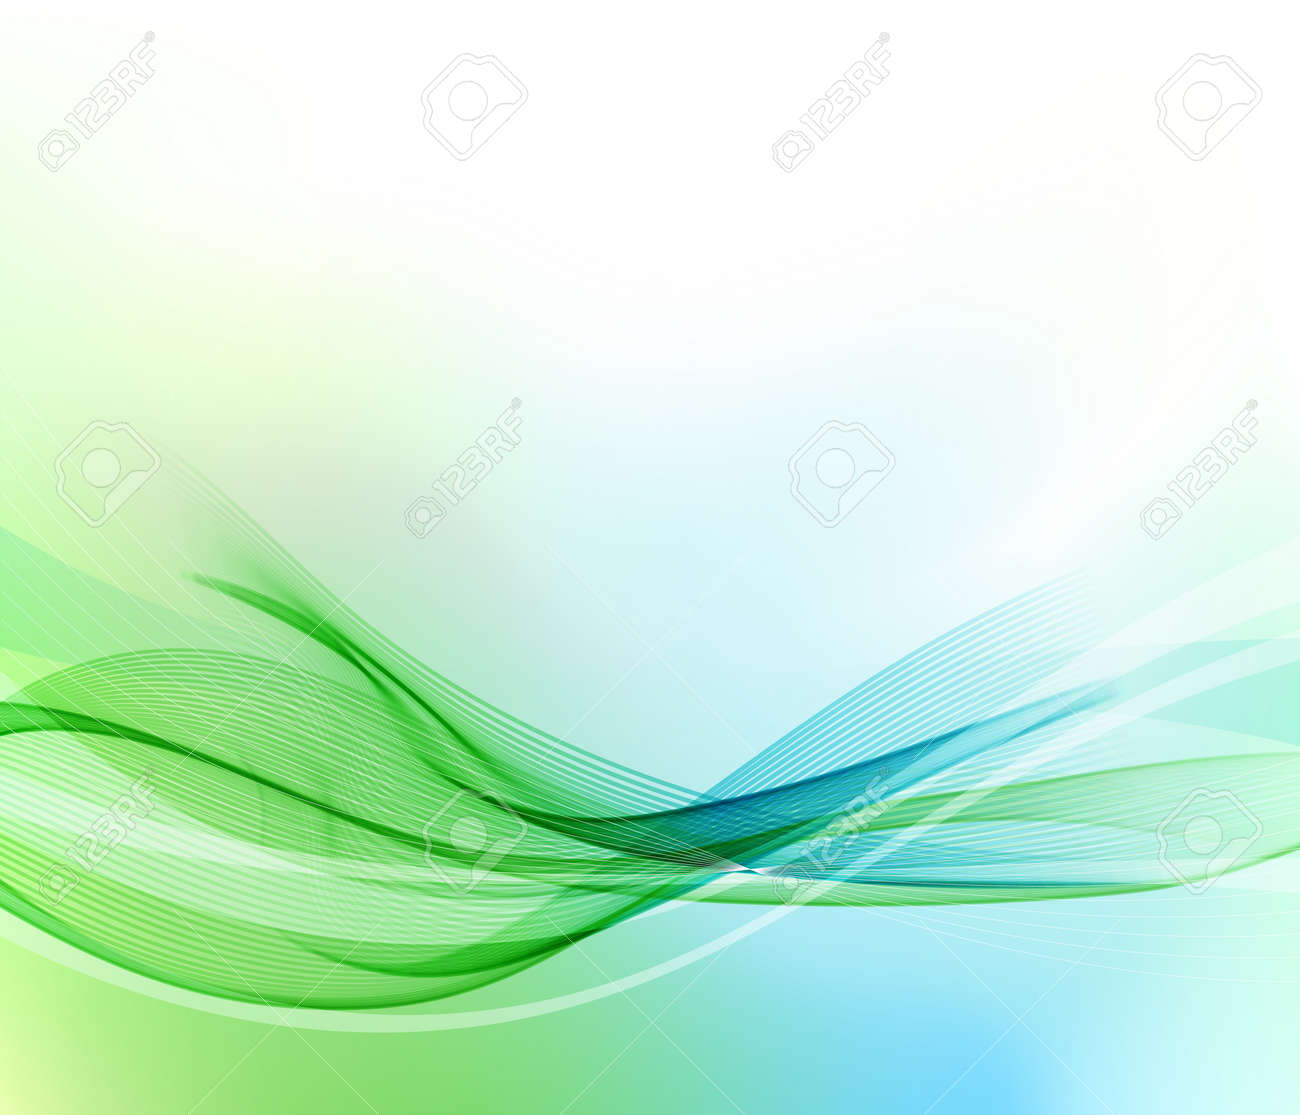 Abstract blue and green wavy lines. Colorful vector background - 56026394